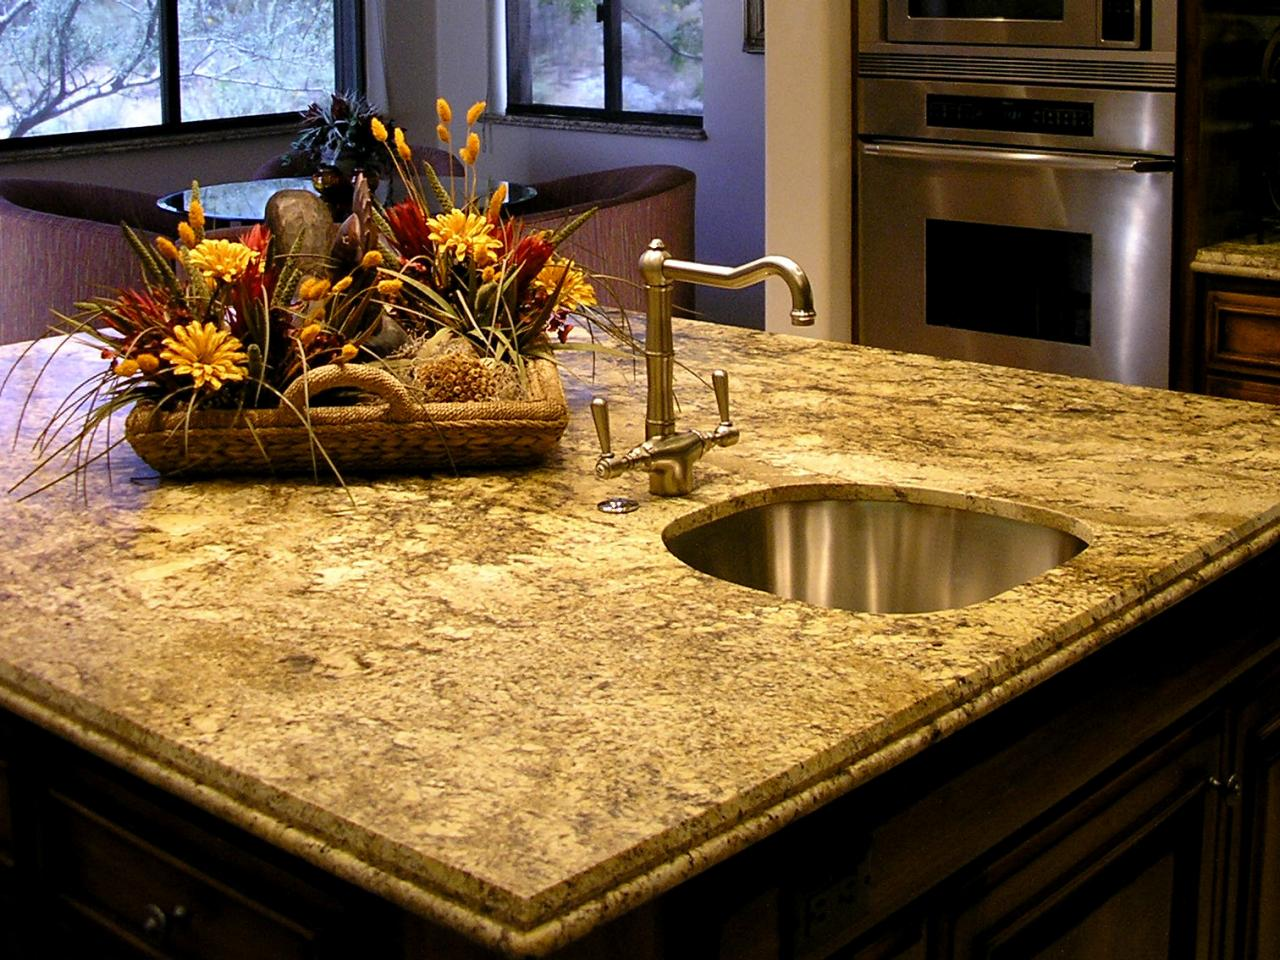 Choosing the Right Kitchen Countertops | HGTV on kitchen countertops and backsplashes, kitchen layout gallery, kitchen sink gallery, concrete countertops gallery, kitchen gallery kraftmaid, stone gallery, kitchen marble countertops, kitchen renovation gallery, kitchen cabinets gallery, silestone kitchen gallery, ikea kitchen gallery, limestone countertops gallery, kitchen tile gallery, kitchen floor gallery, kitchen granite samples, kitchen with countertops, kitchen style gallery, kitchen wall gallery, kitchen color gallery, kitchen appliance gallery,